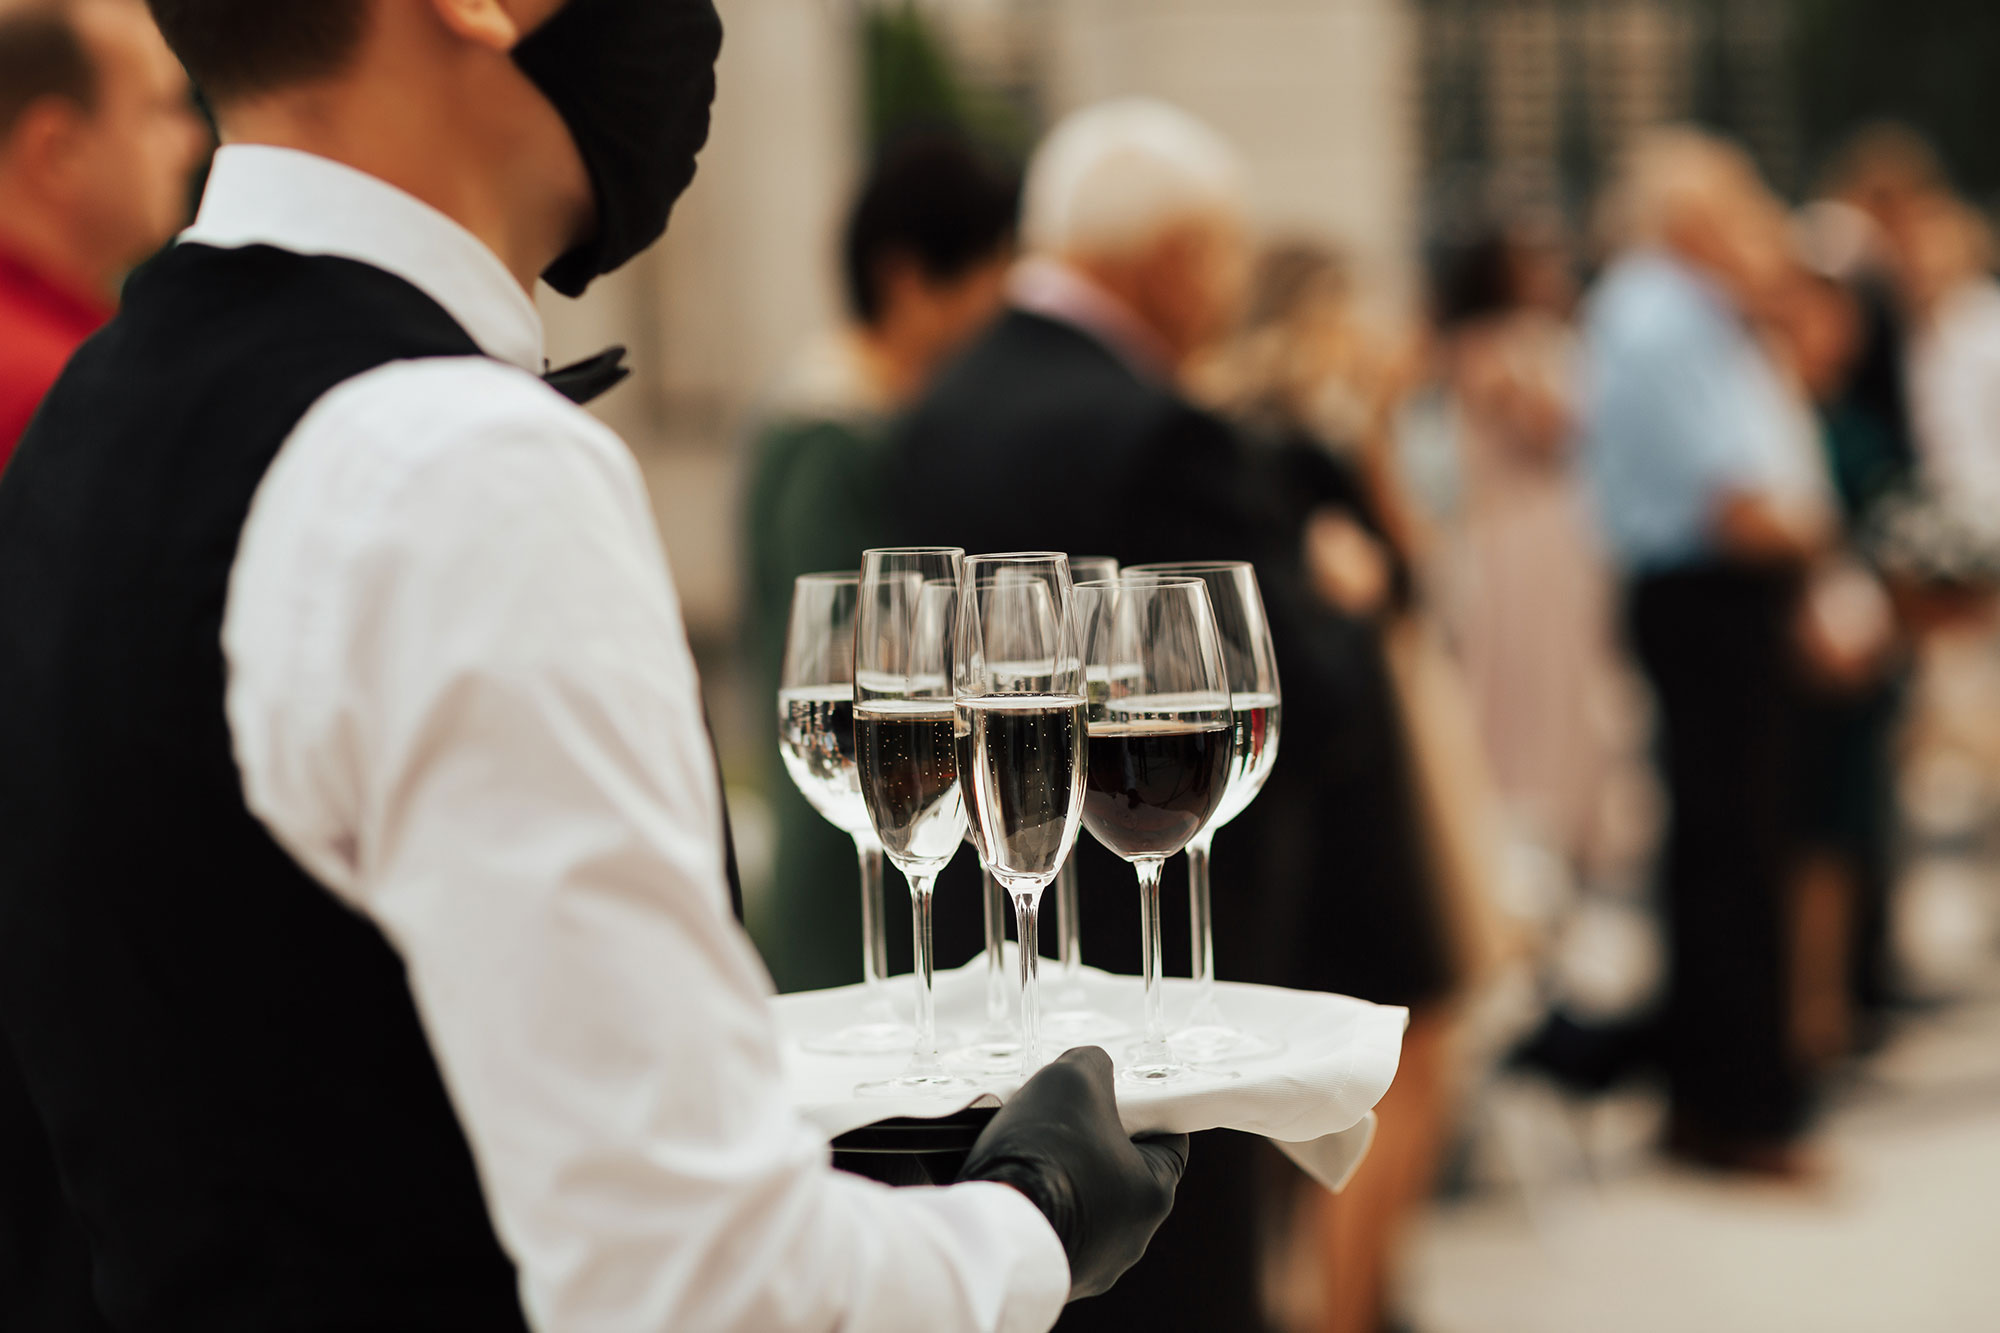 Waiter with wine glasses wearing PPE - Outdoor party - event insurance protection